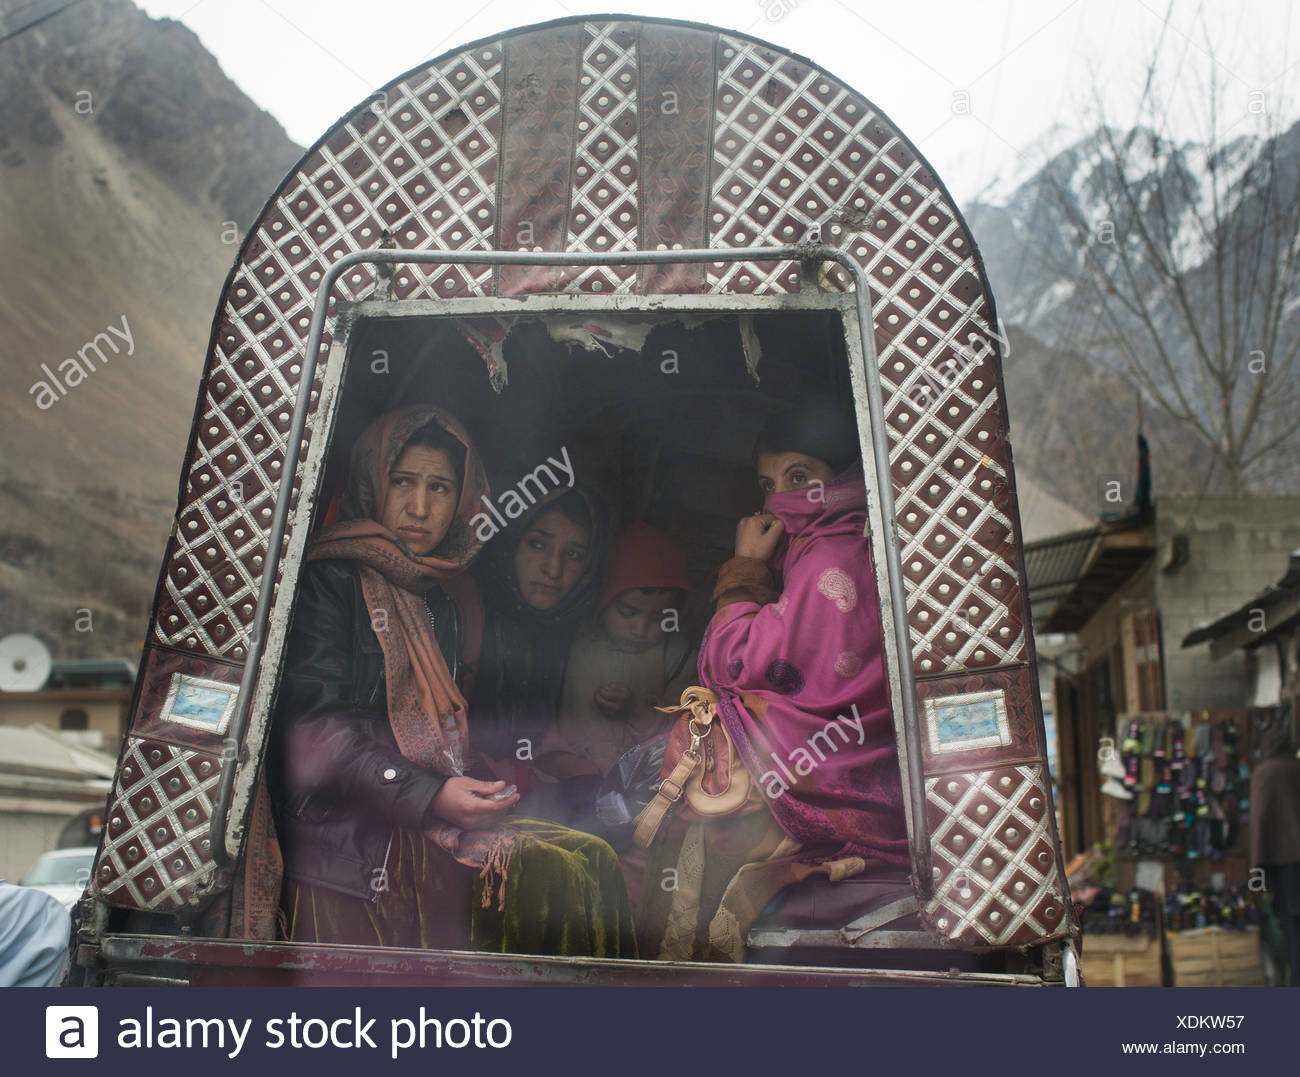 Women in a public minibus in the Hunza Region. - Stock Image